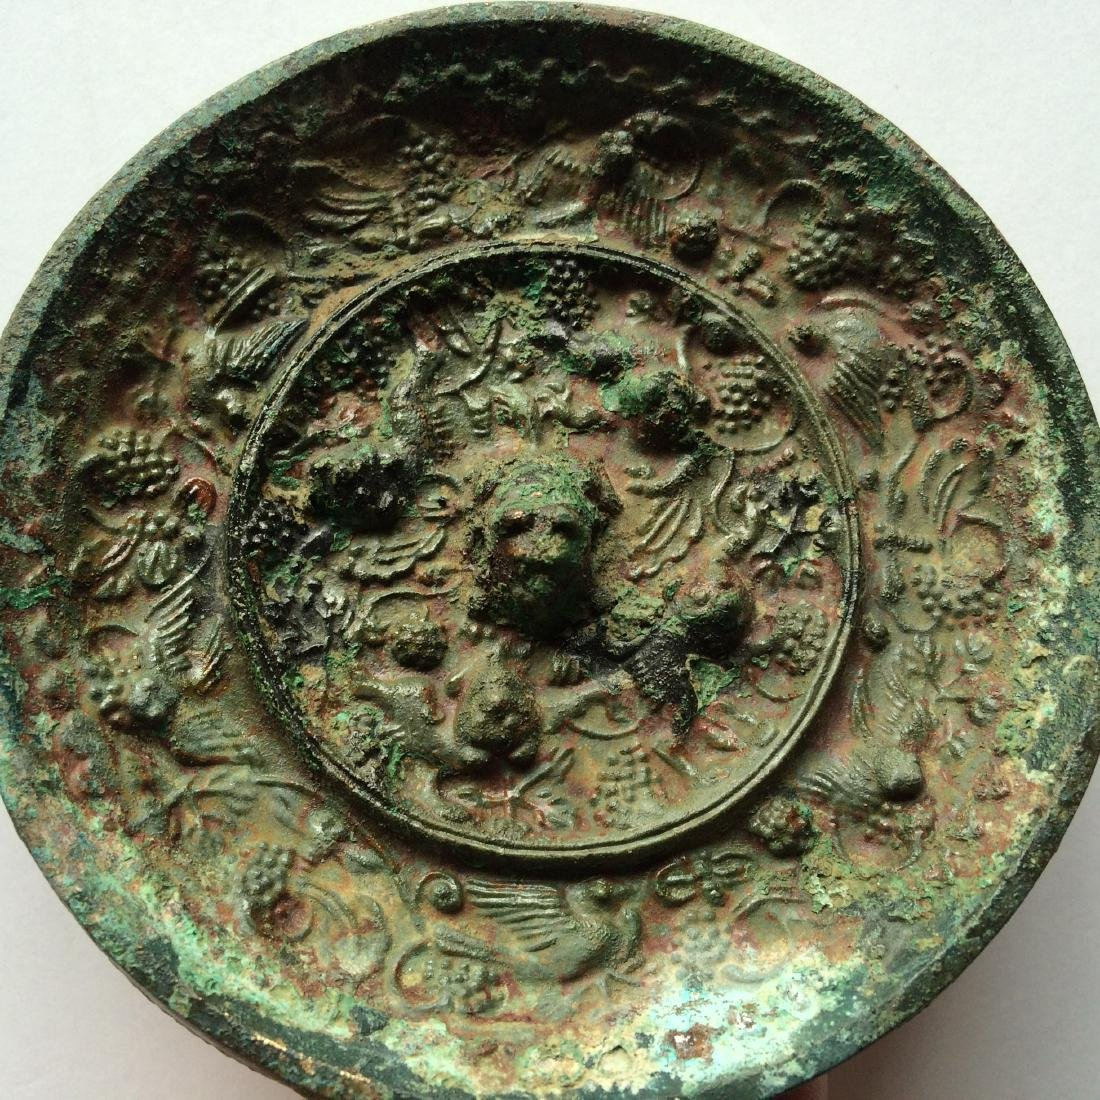 Old Chinese Bronze Mirror, Grapes/Sea Monsters - 2